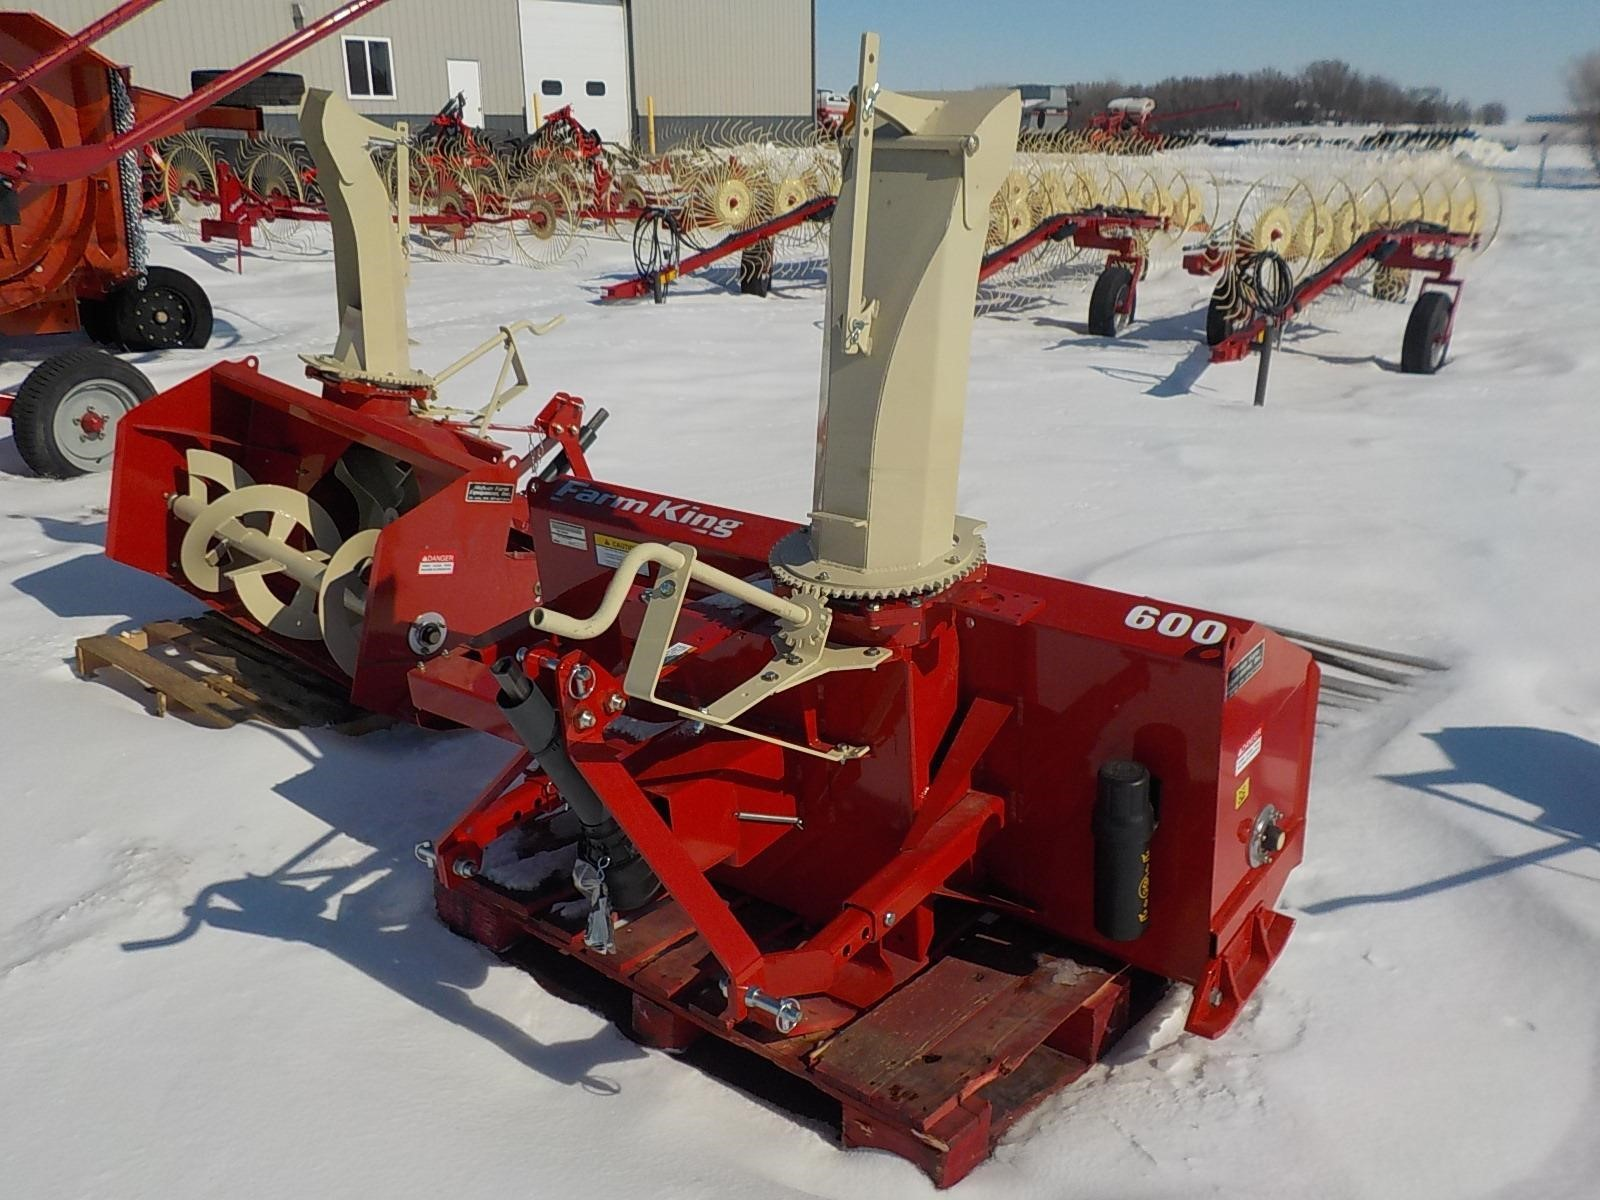 2020 Farm King Y600 Snow Blower